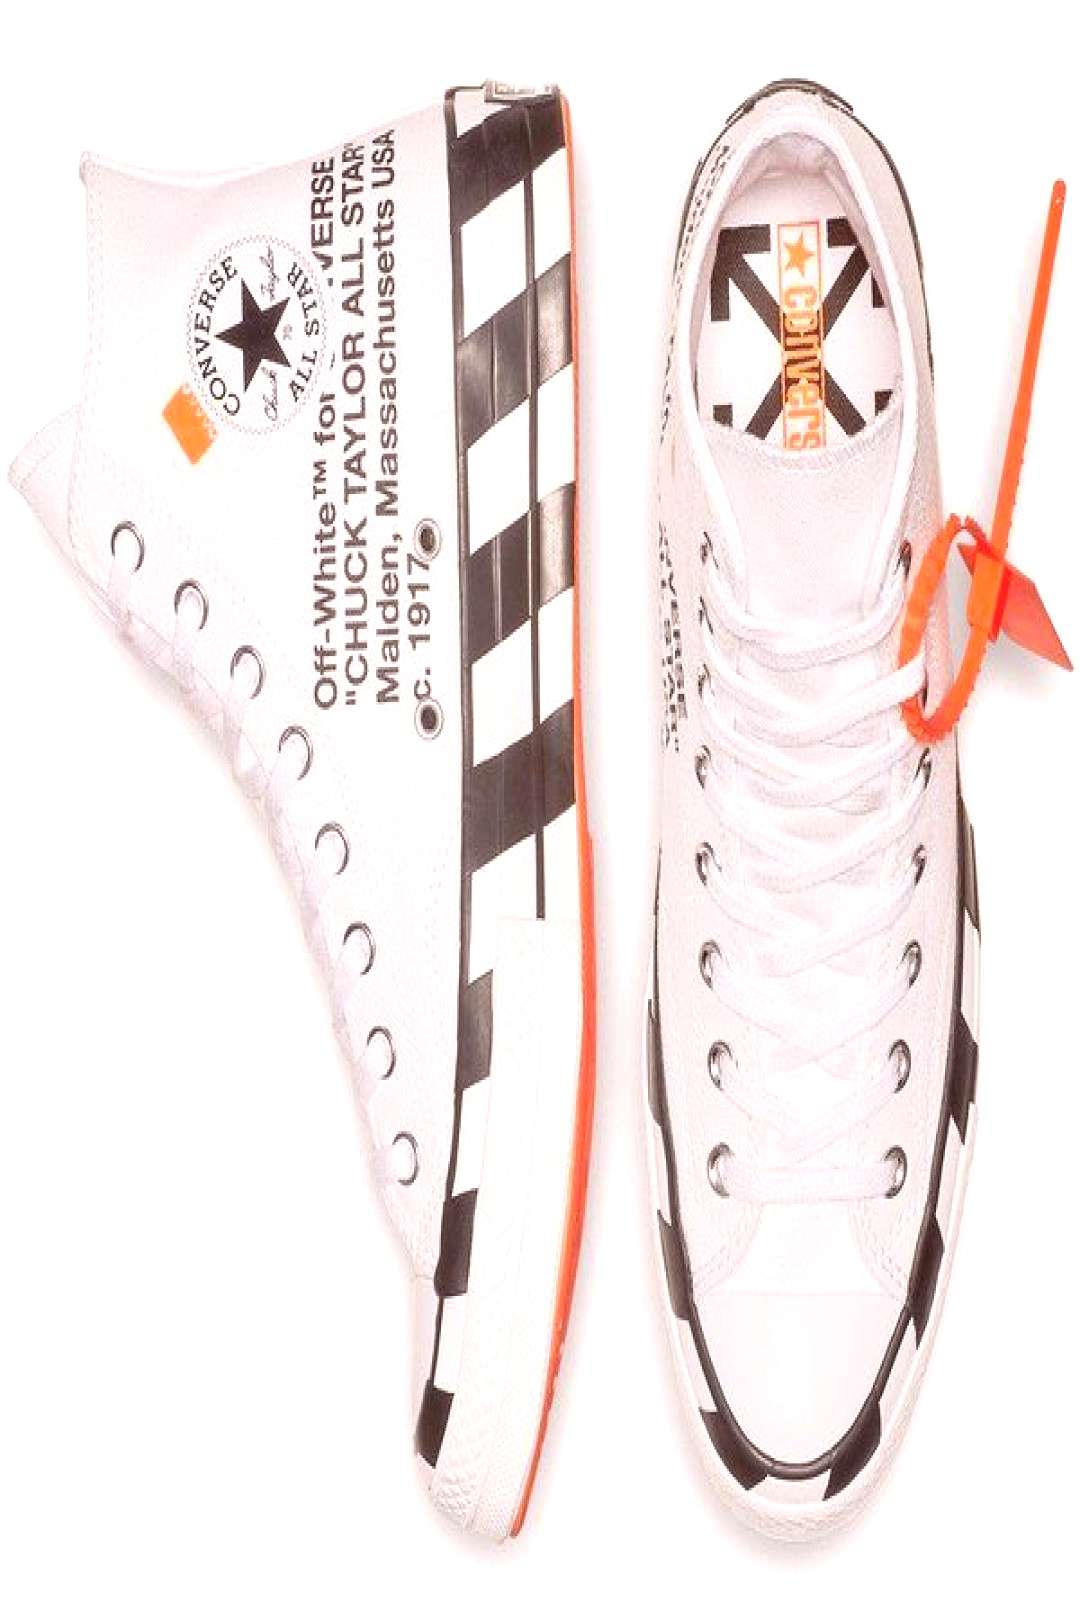 Off-White × Converse Chuck Taylor All Star 70